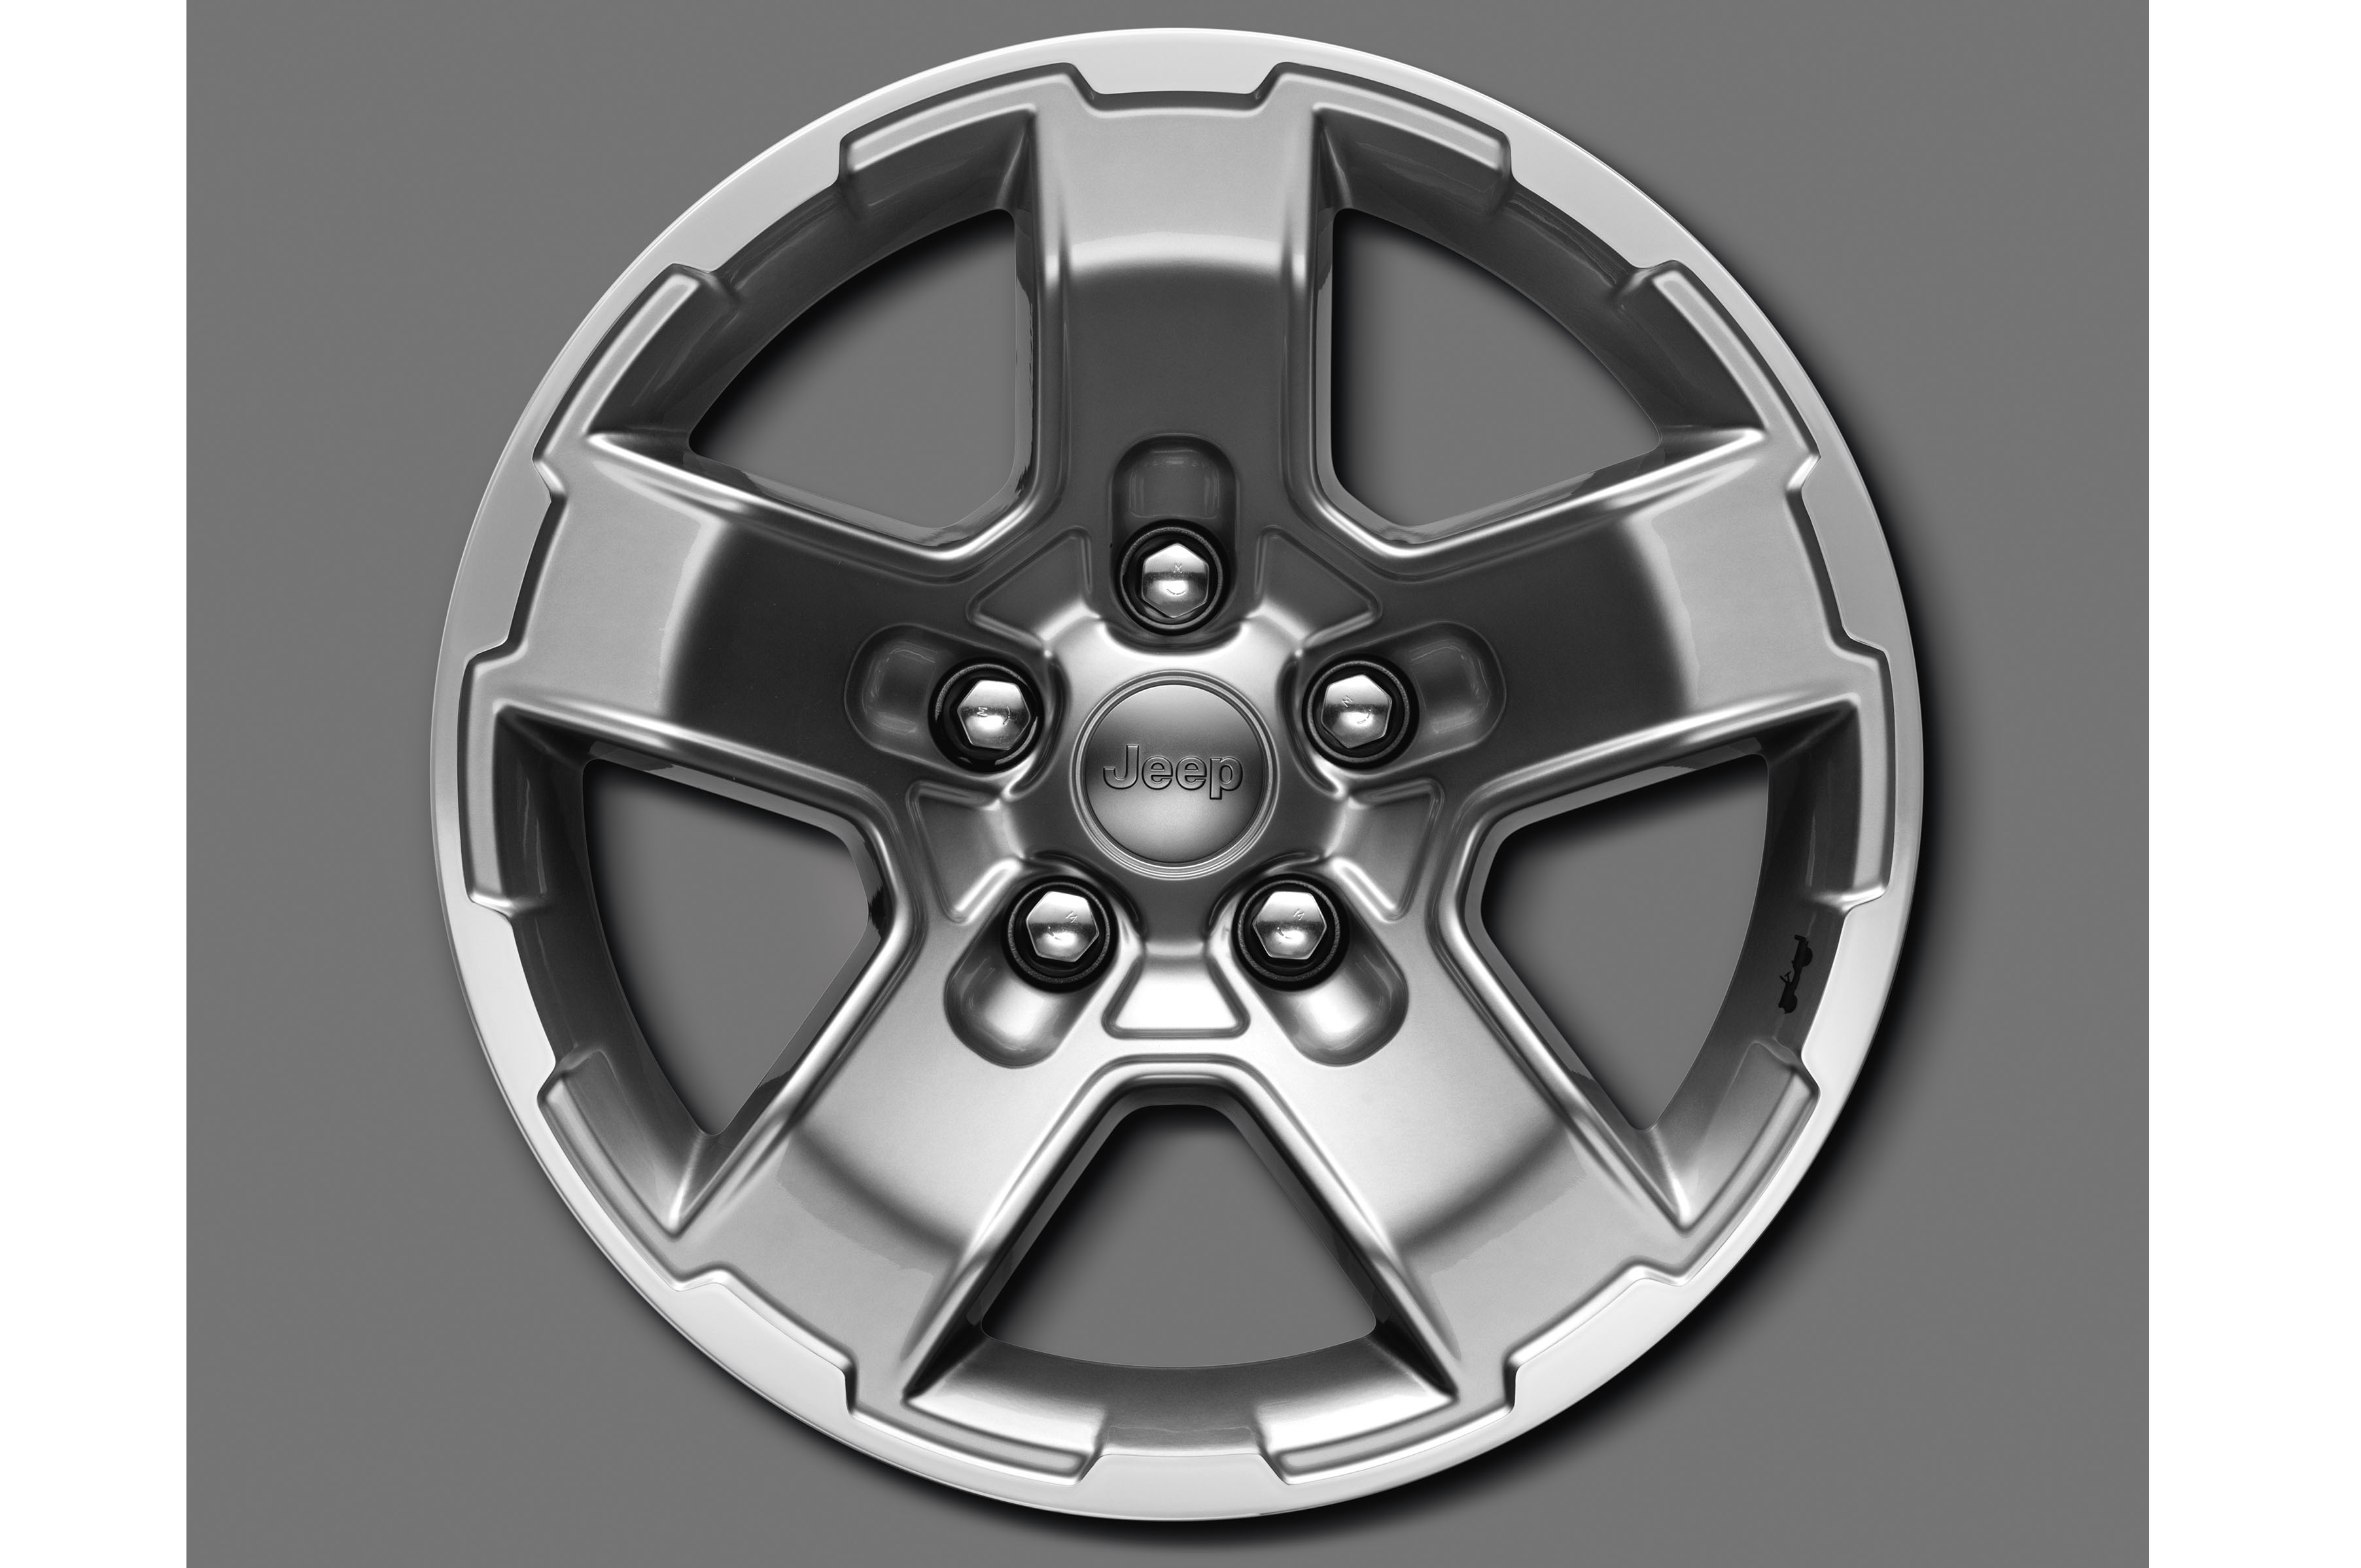 2018 Jeep Wrangler Mopar Wheel